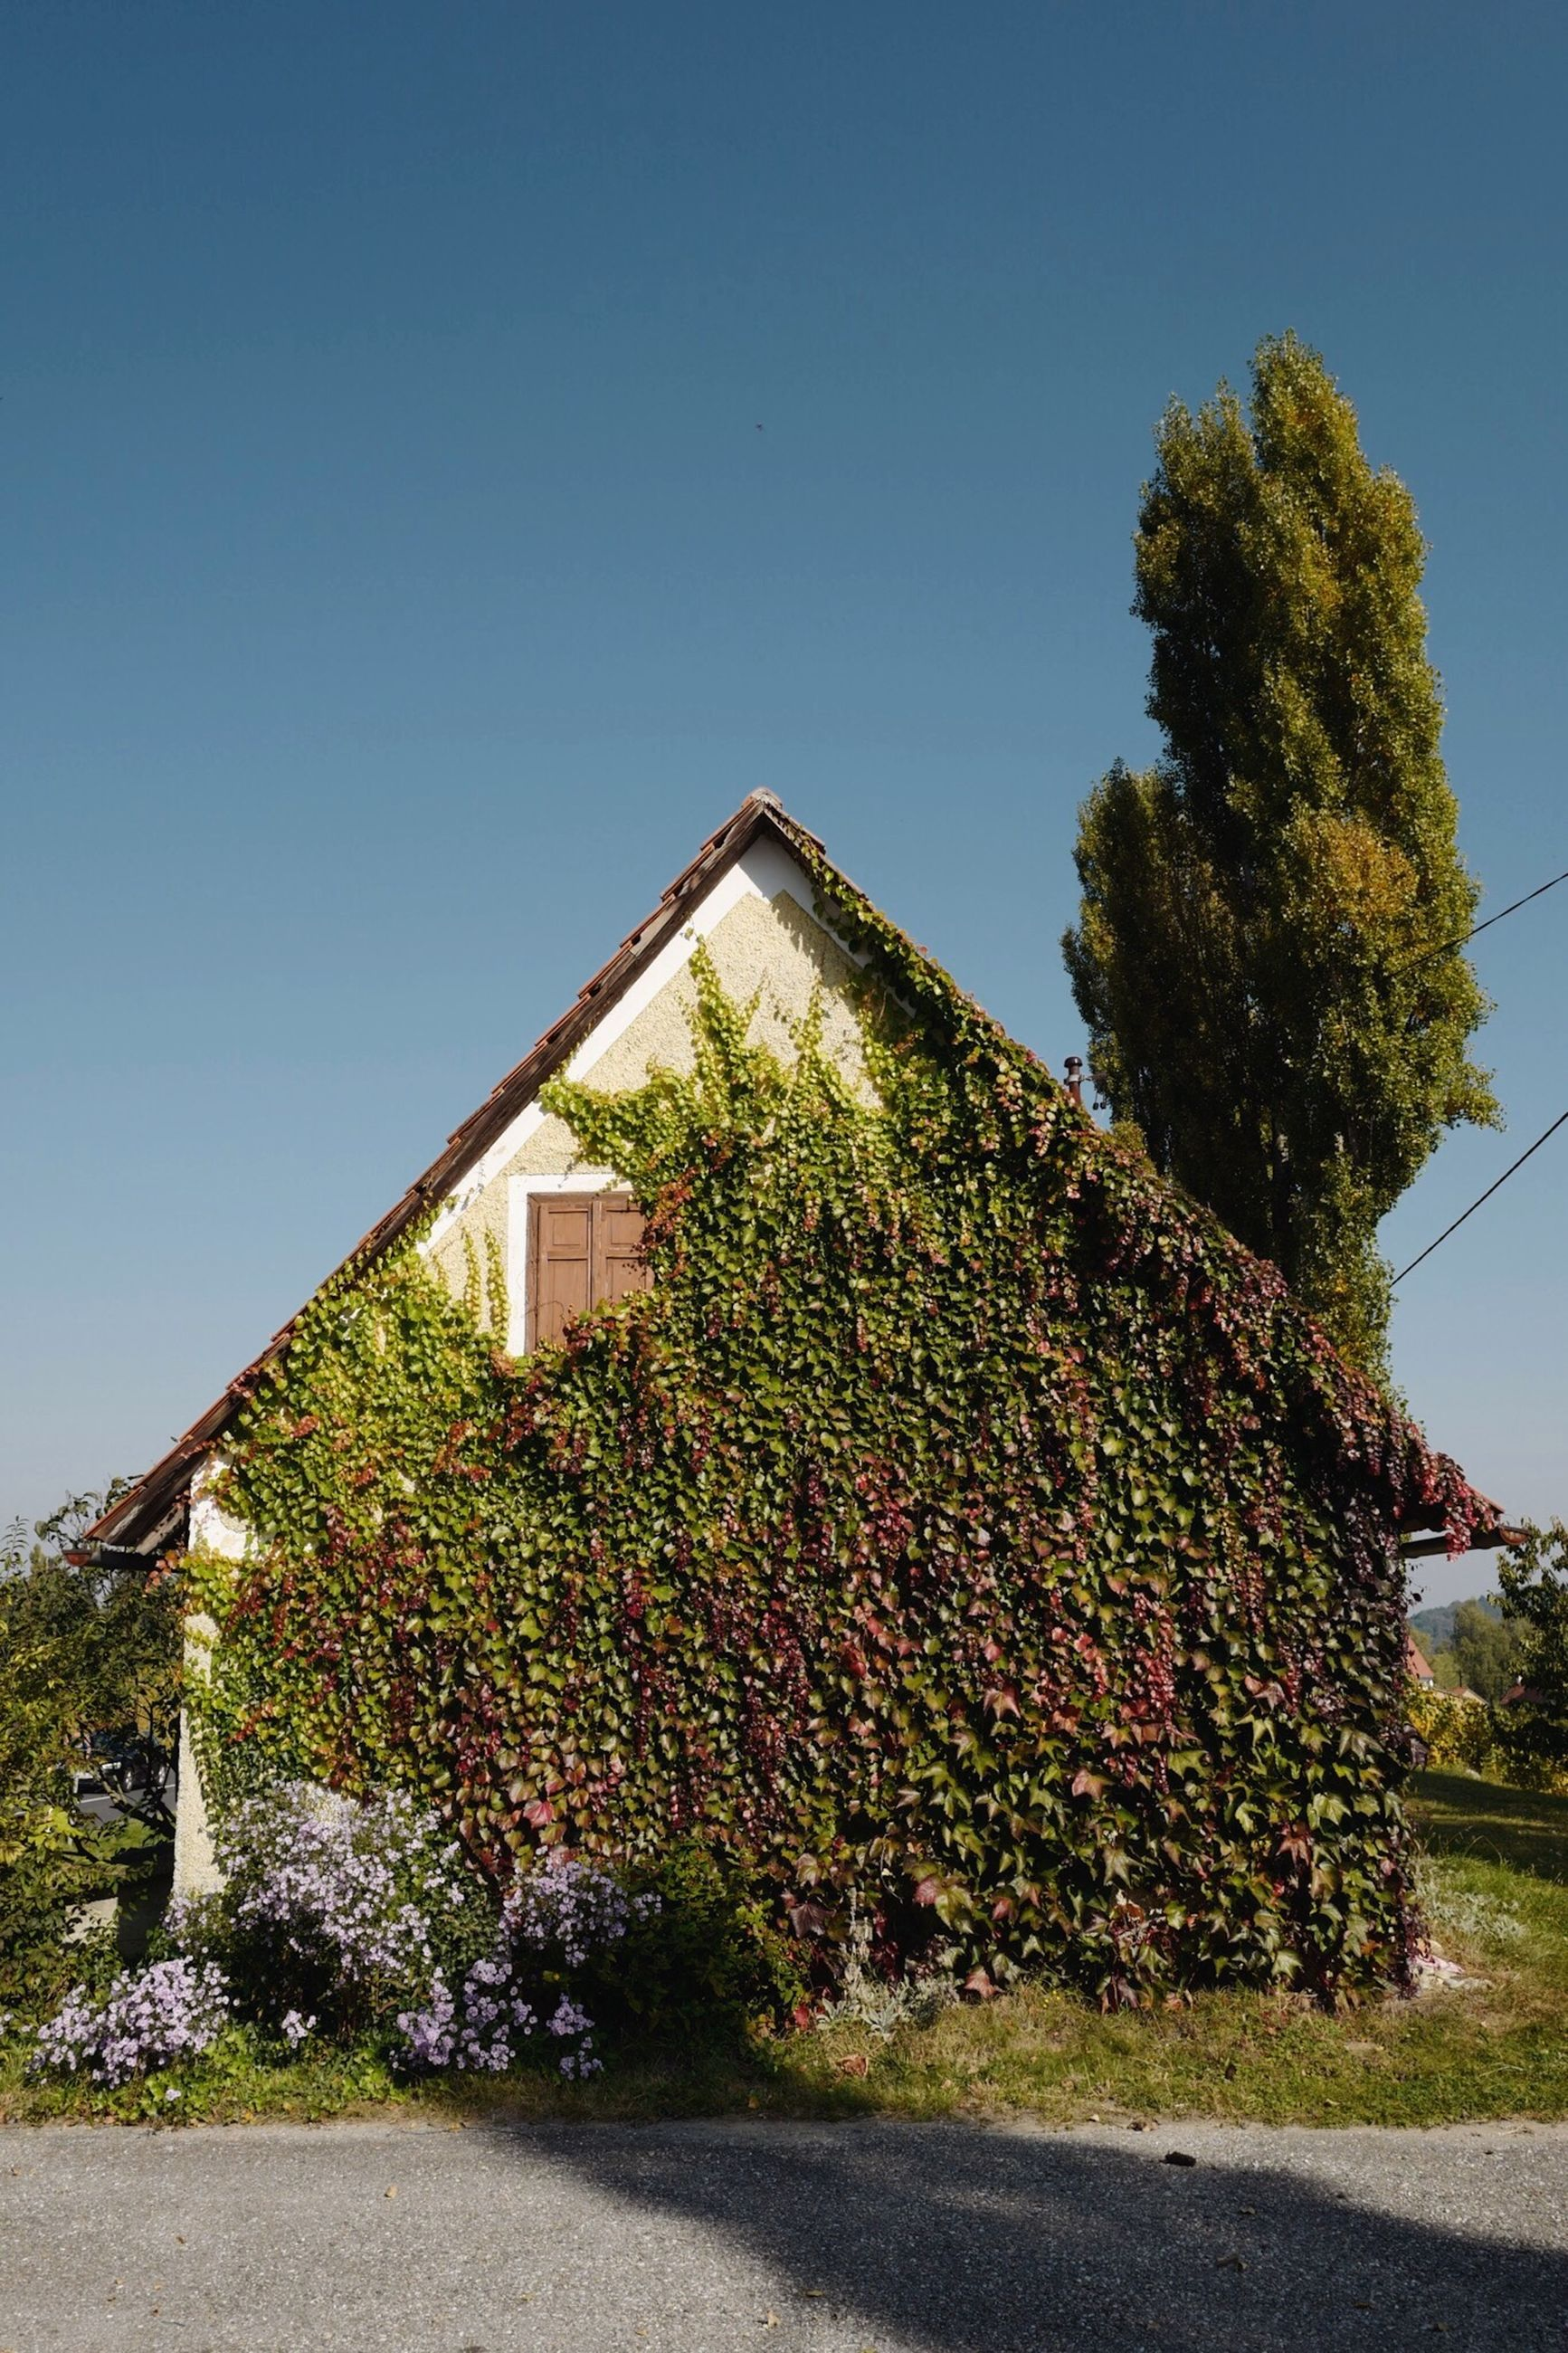 plant, sky, architecture, built structure, nature, tree, no people, clear sky, growth, building, day, blue, building exterior, house, sunlight, copy space, outdoors, green color, road, ivy, hedge